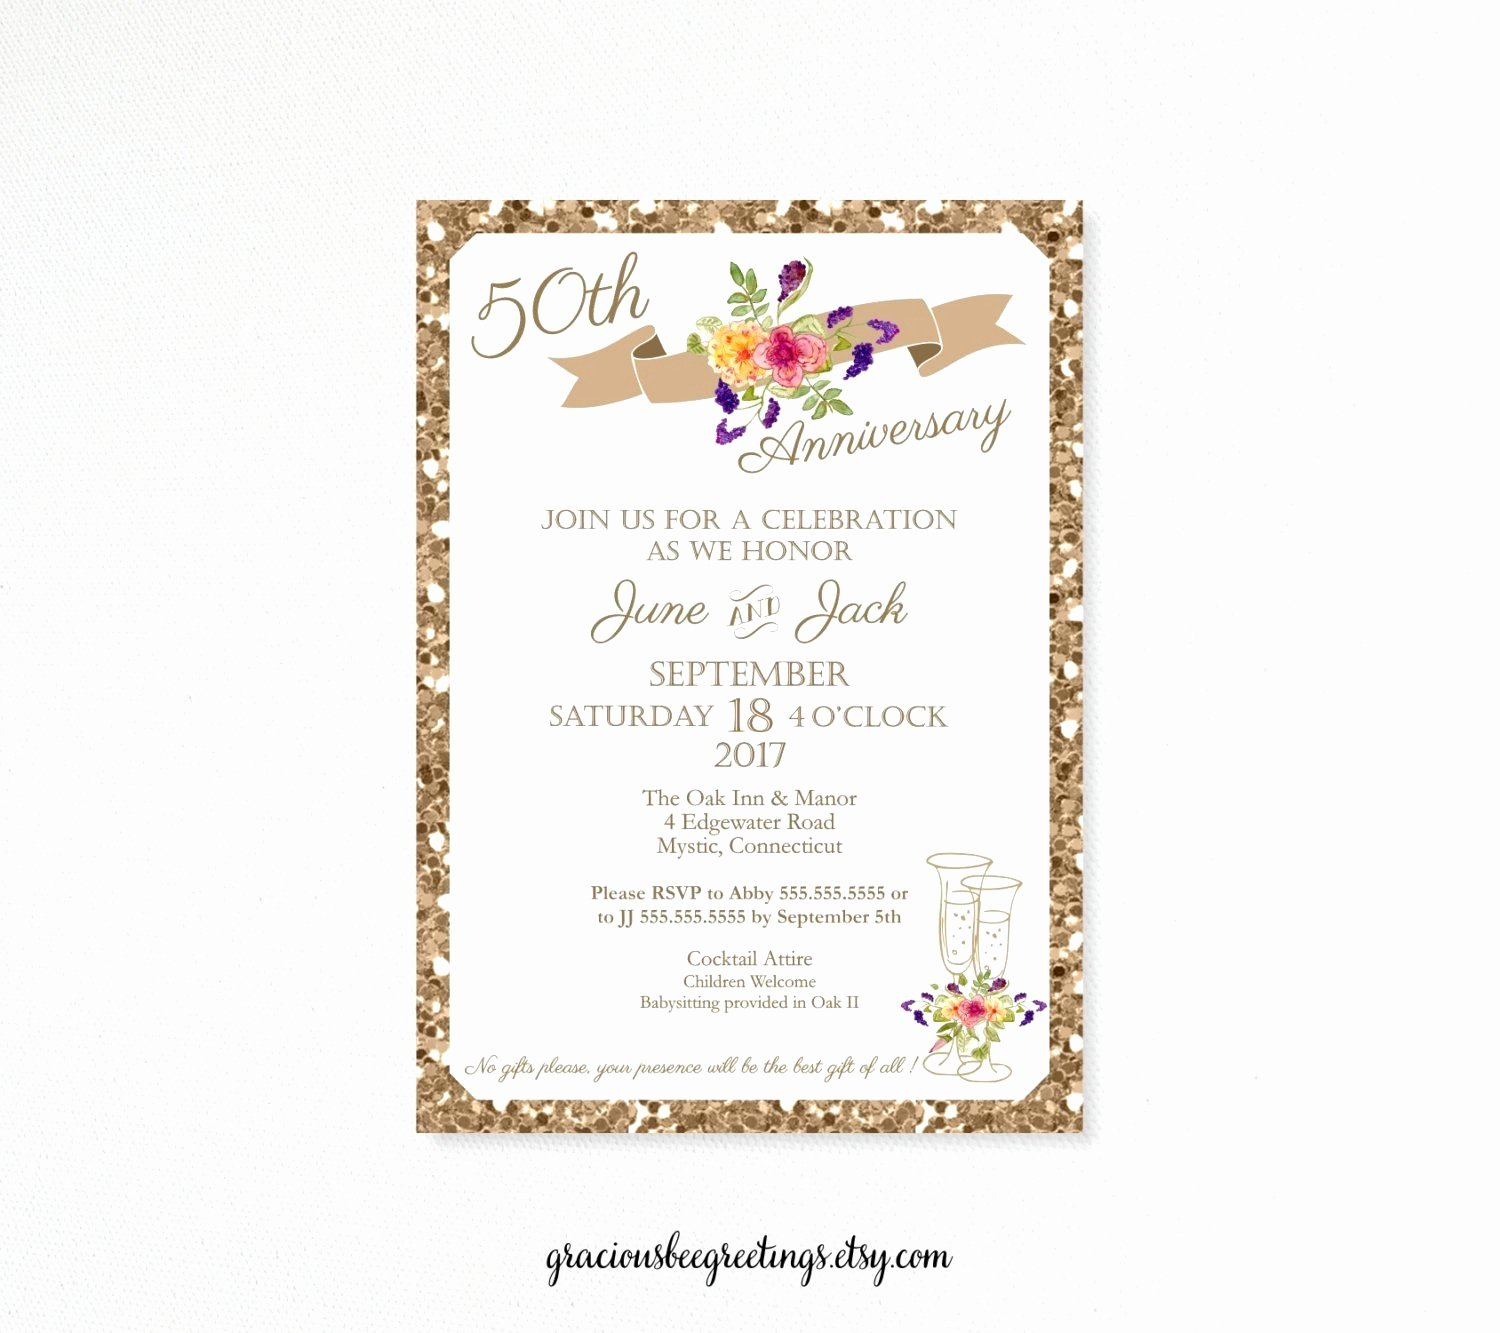 Wedding Anniversary Invite Template Awesome Invitation Templates 50th Wedding Anniversary New